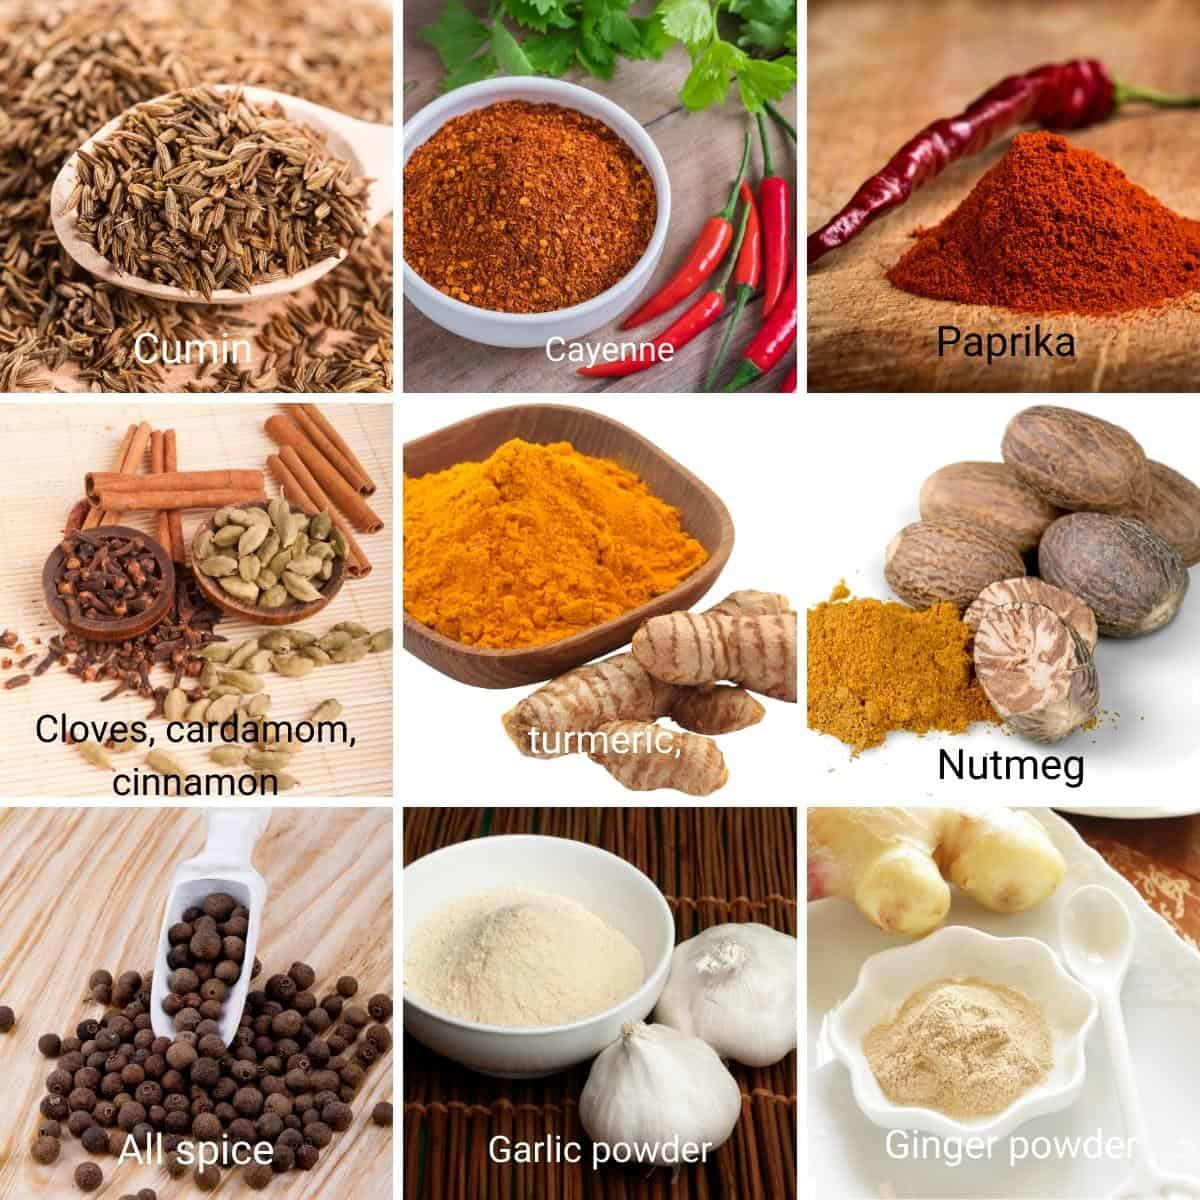 Ingredients shot collage for shawarma spice.